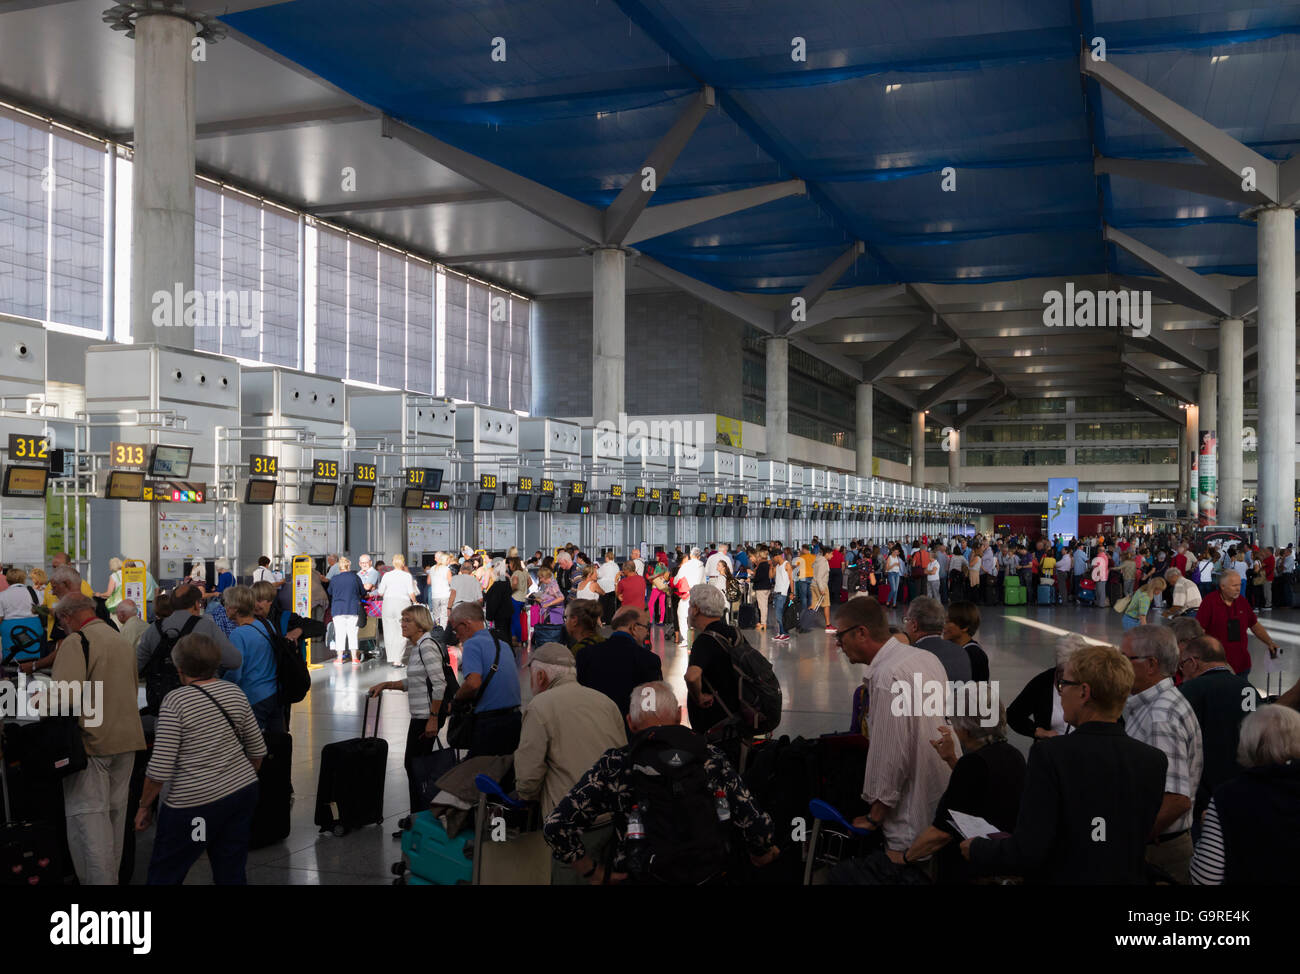 Malaga, Costa del Sol, Malaga Province, Andalusia, southern Spain.  Check-in queues in the airport. - Stock Image